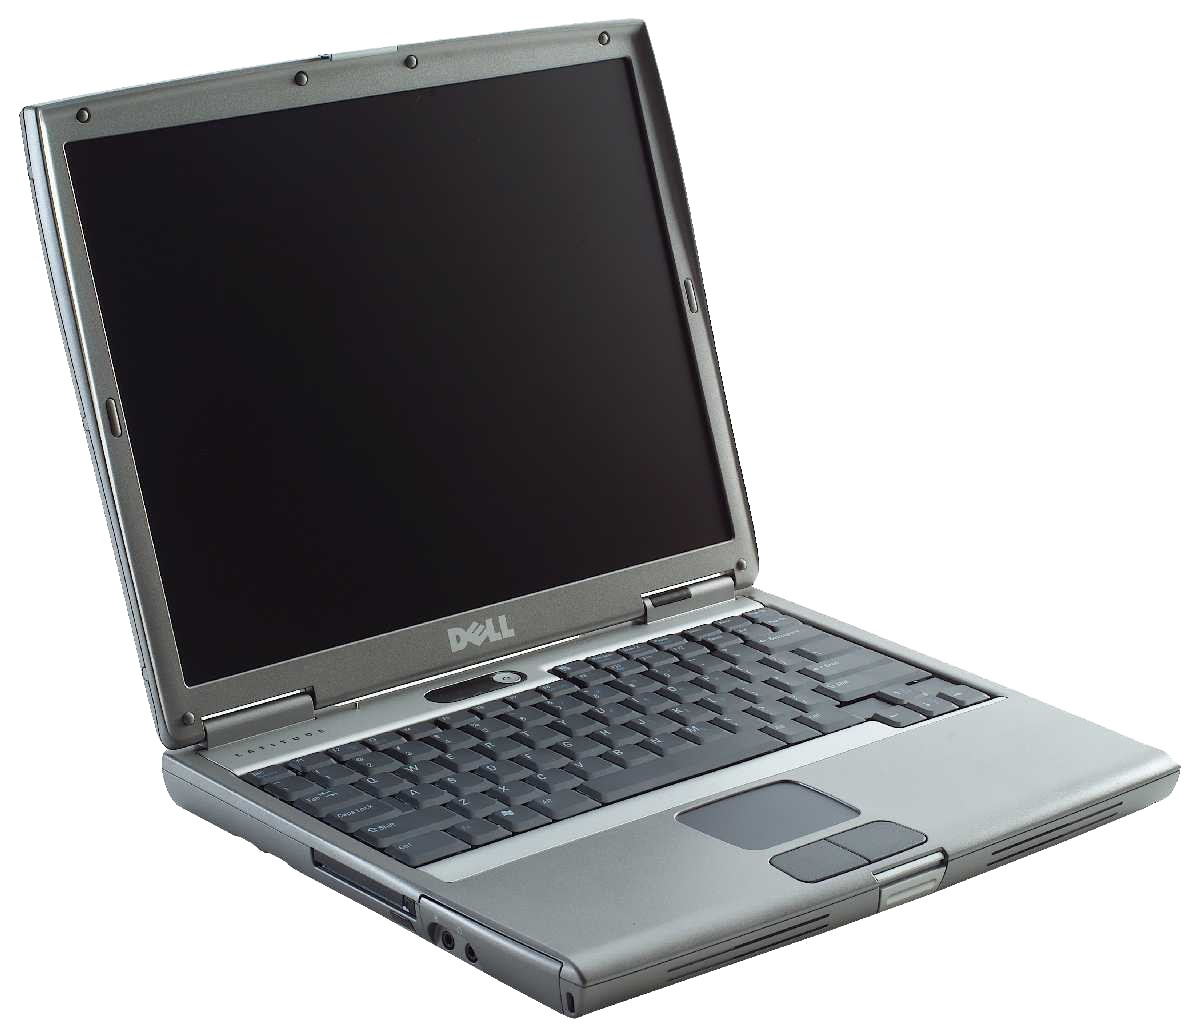 LatitudeD610-Windows 7 D610 Dell Latitude Notebook Refurbished 250GB HDD Laptop 4GB RAM   -image